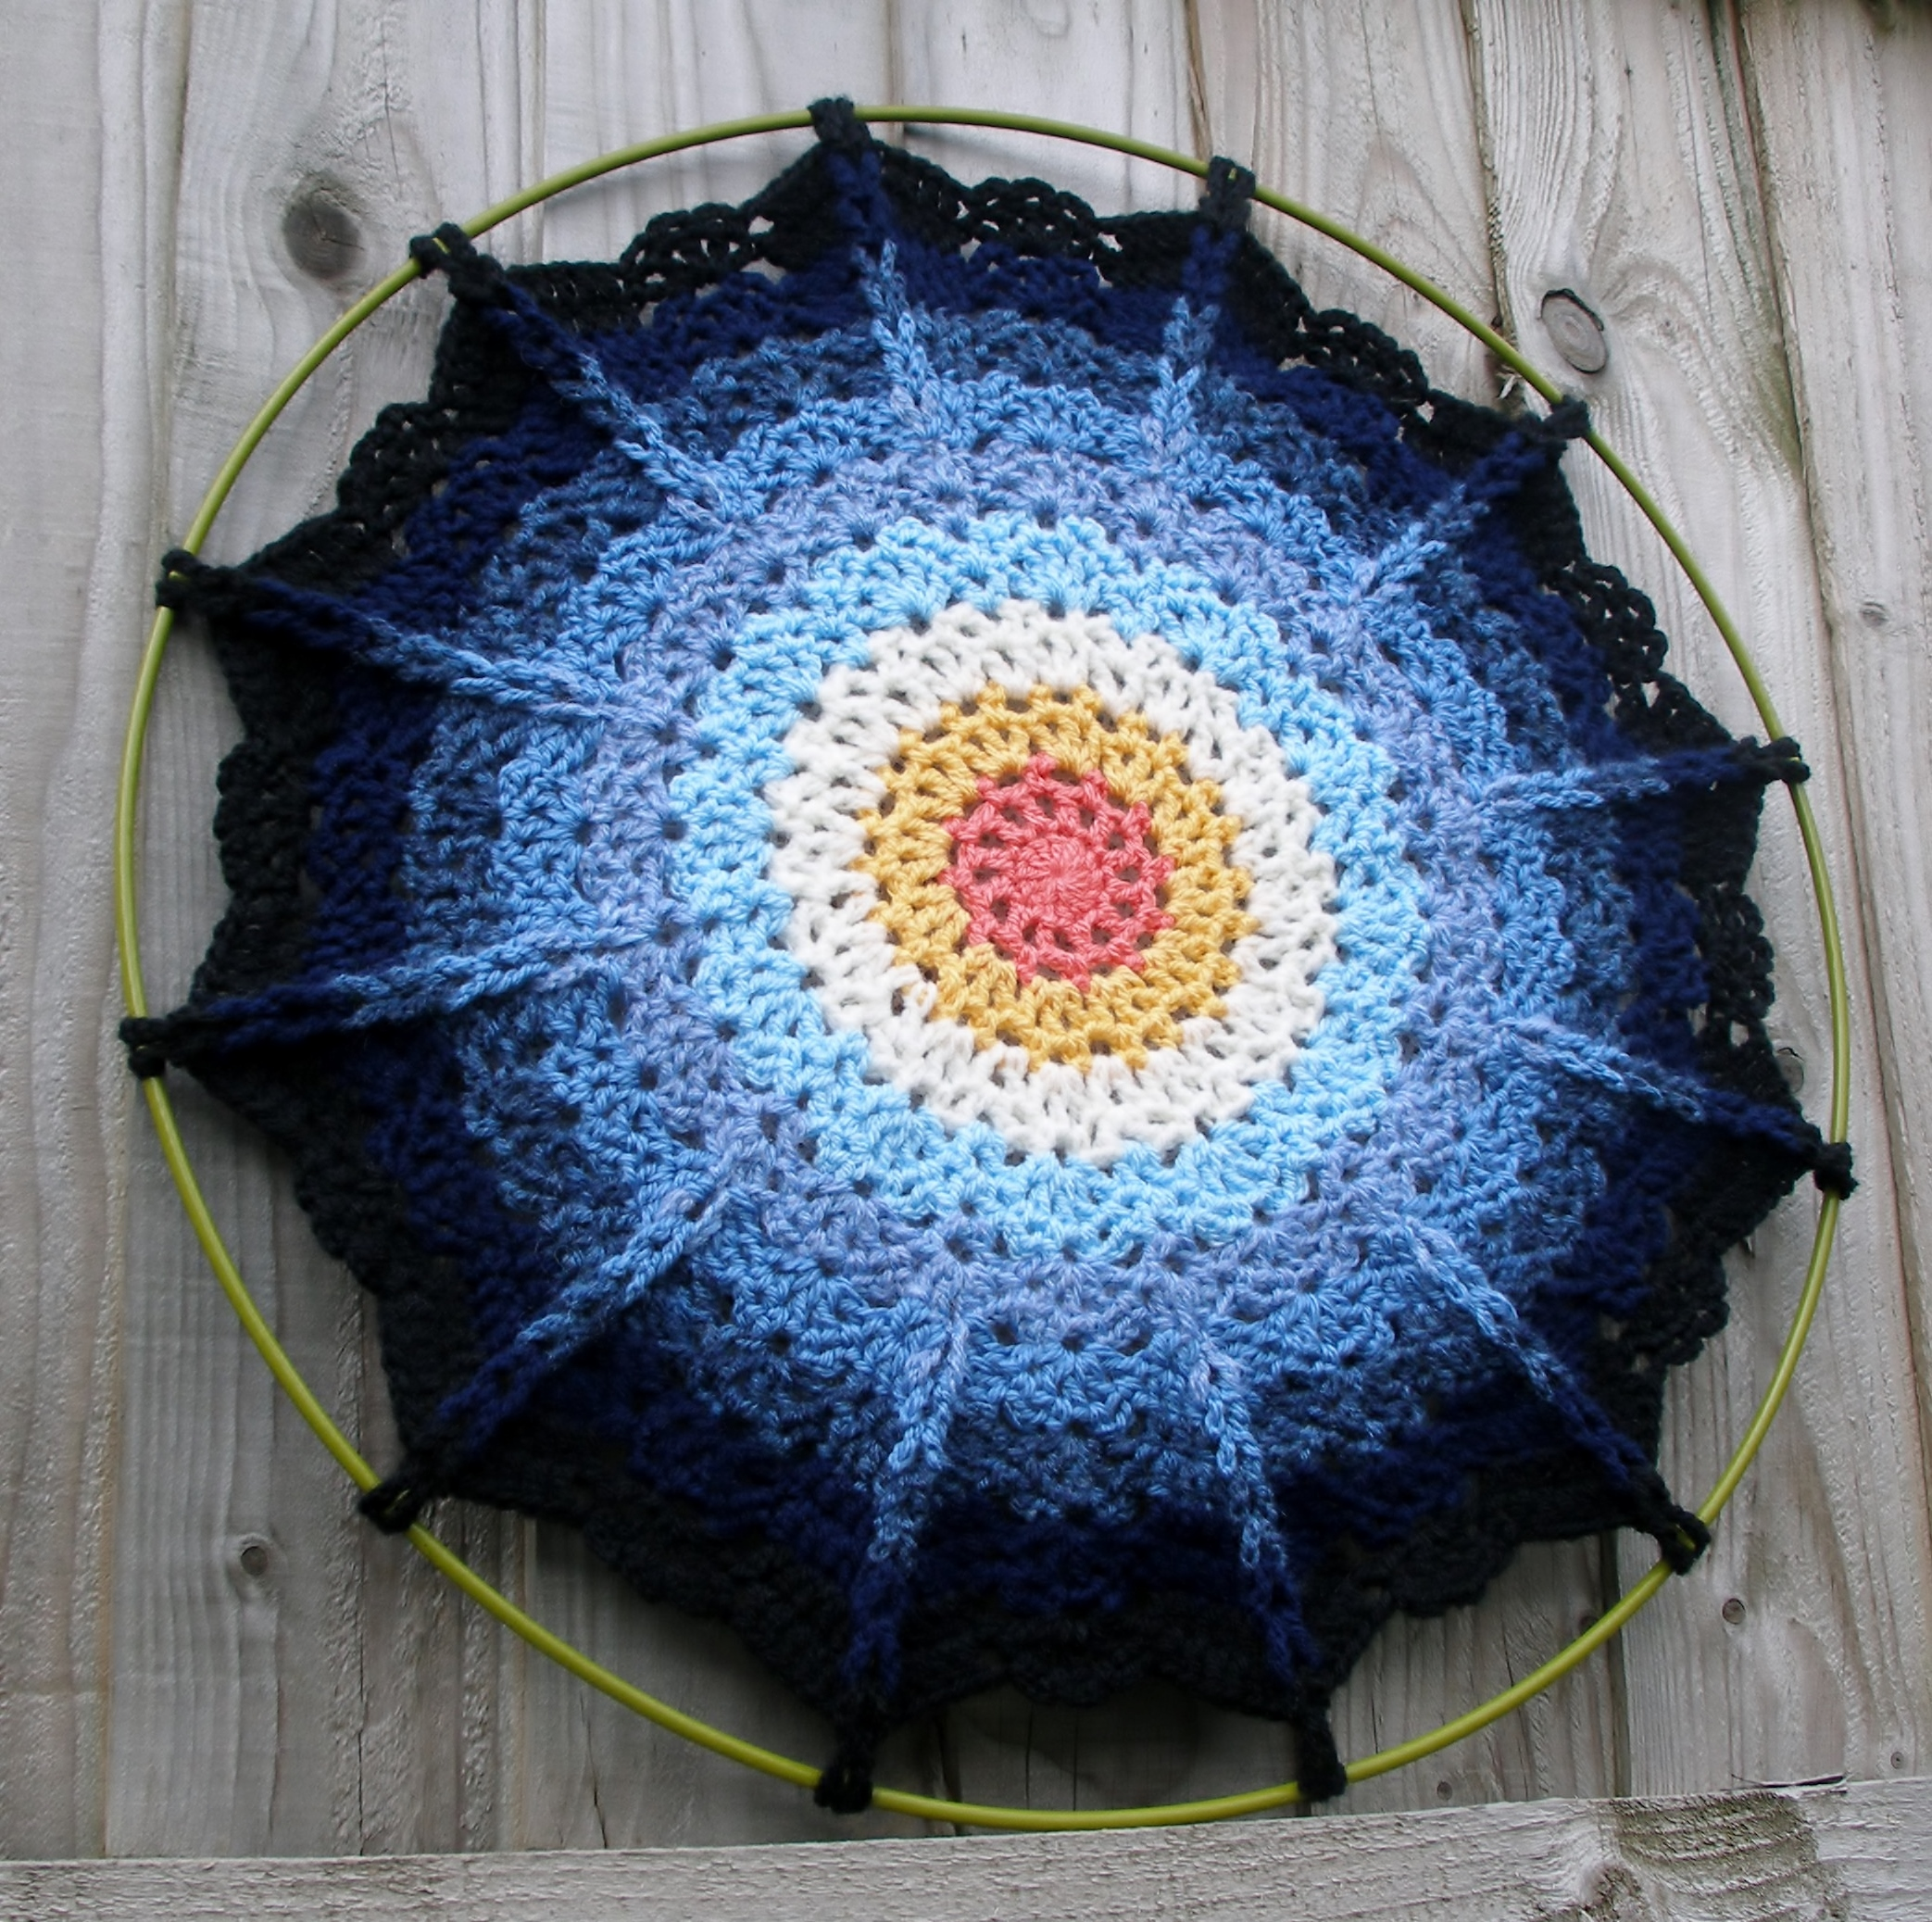 crochet – Tintocktap and The Crafty Cowrie